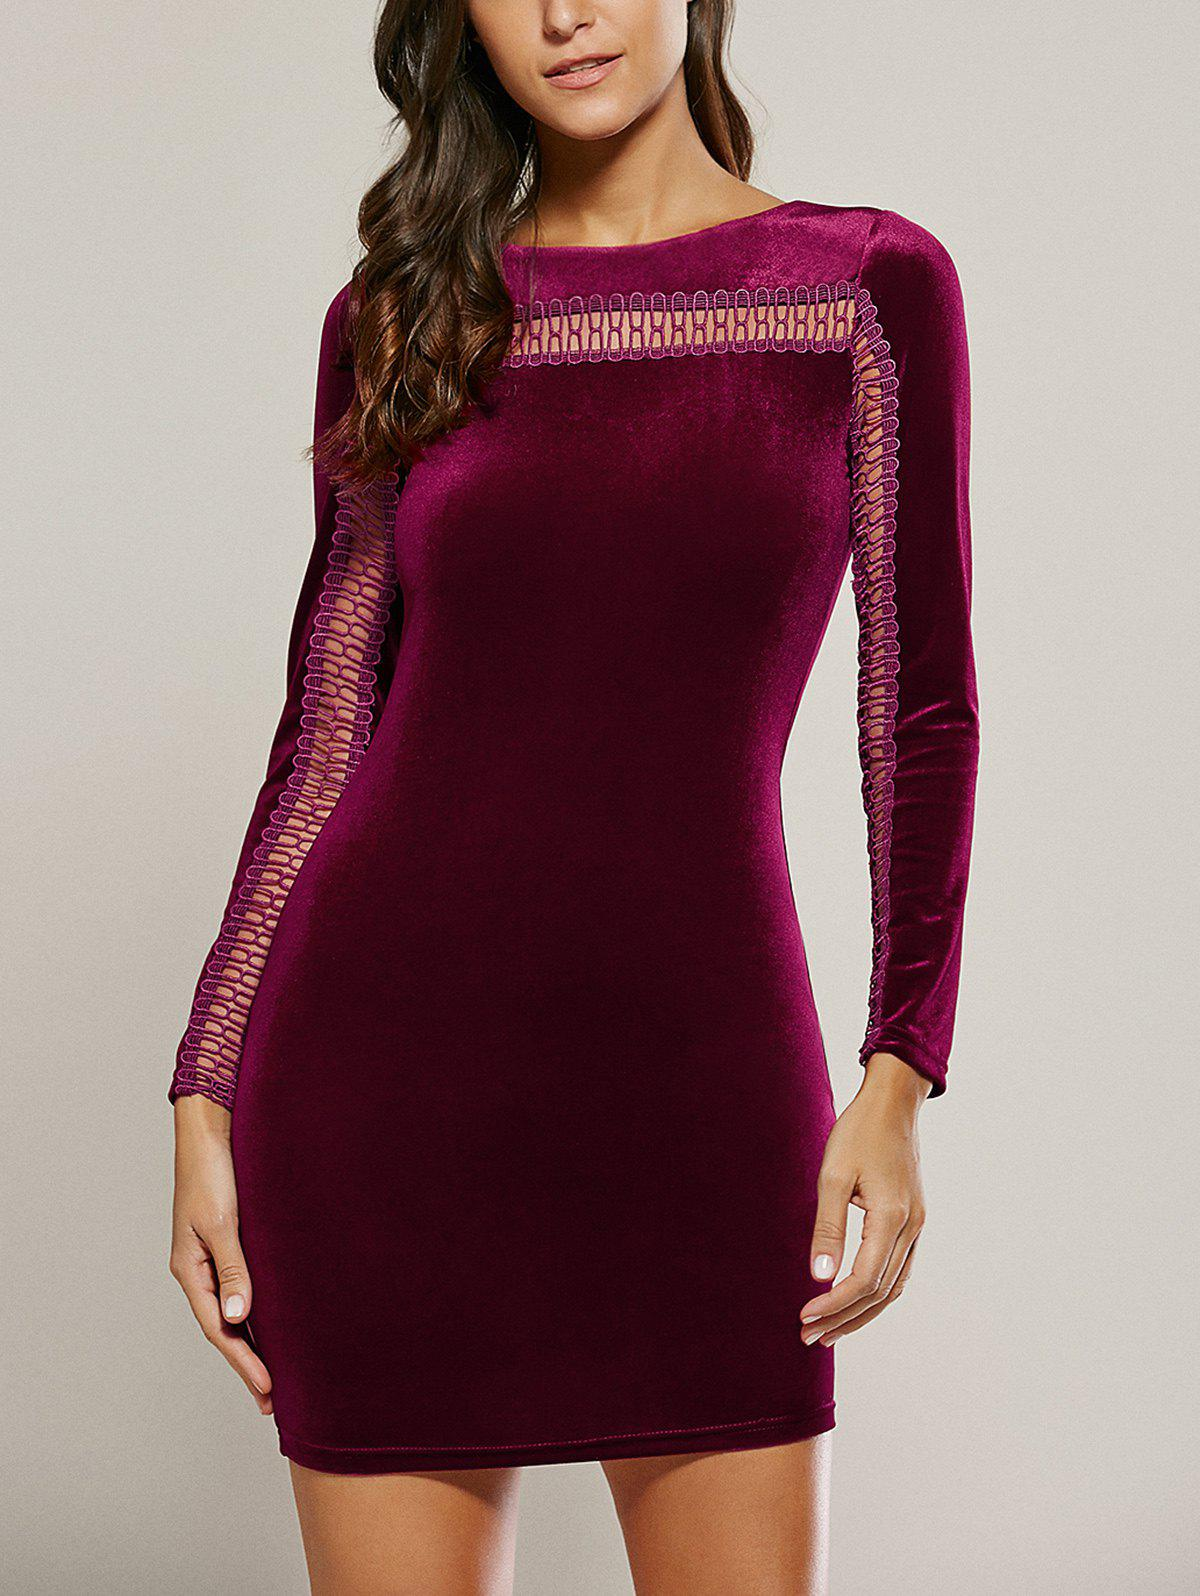 Long Sleeve Hollow Out Velet Dress - WINE RED S